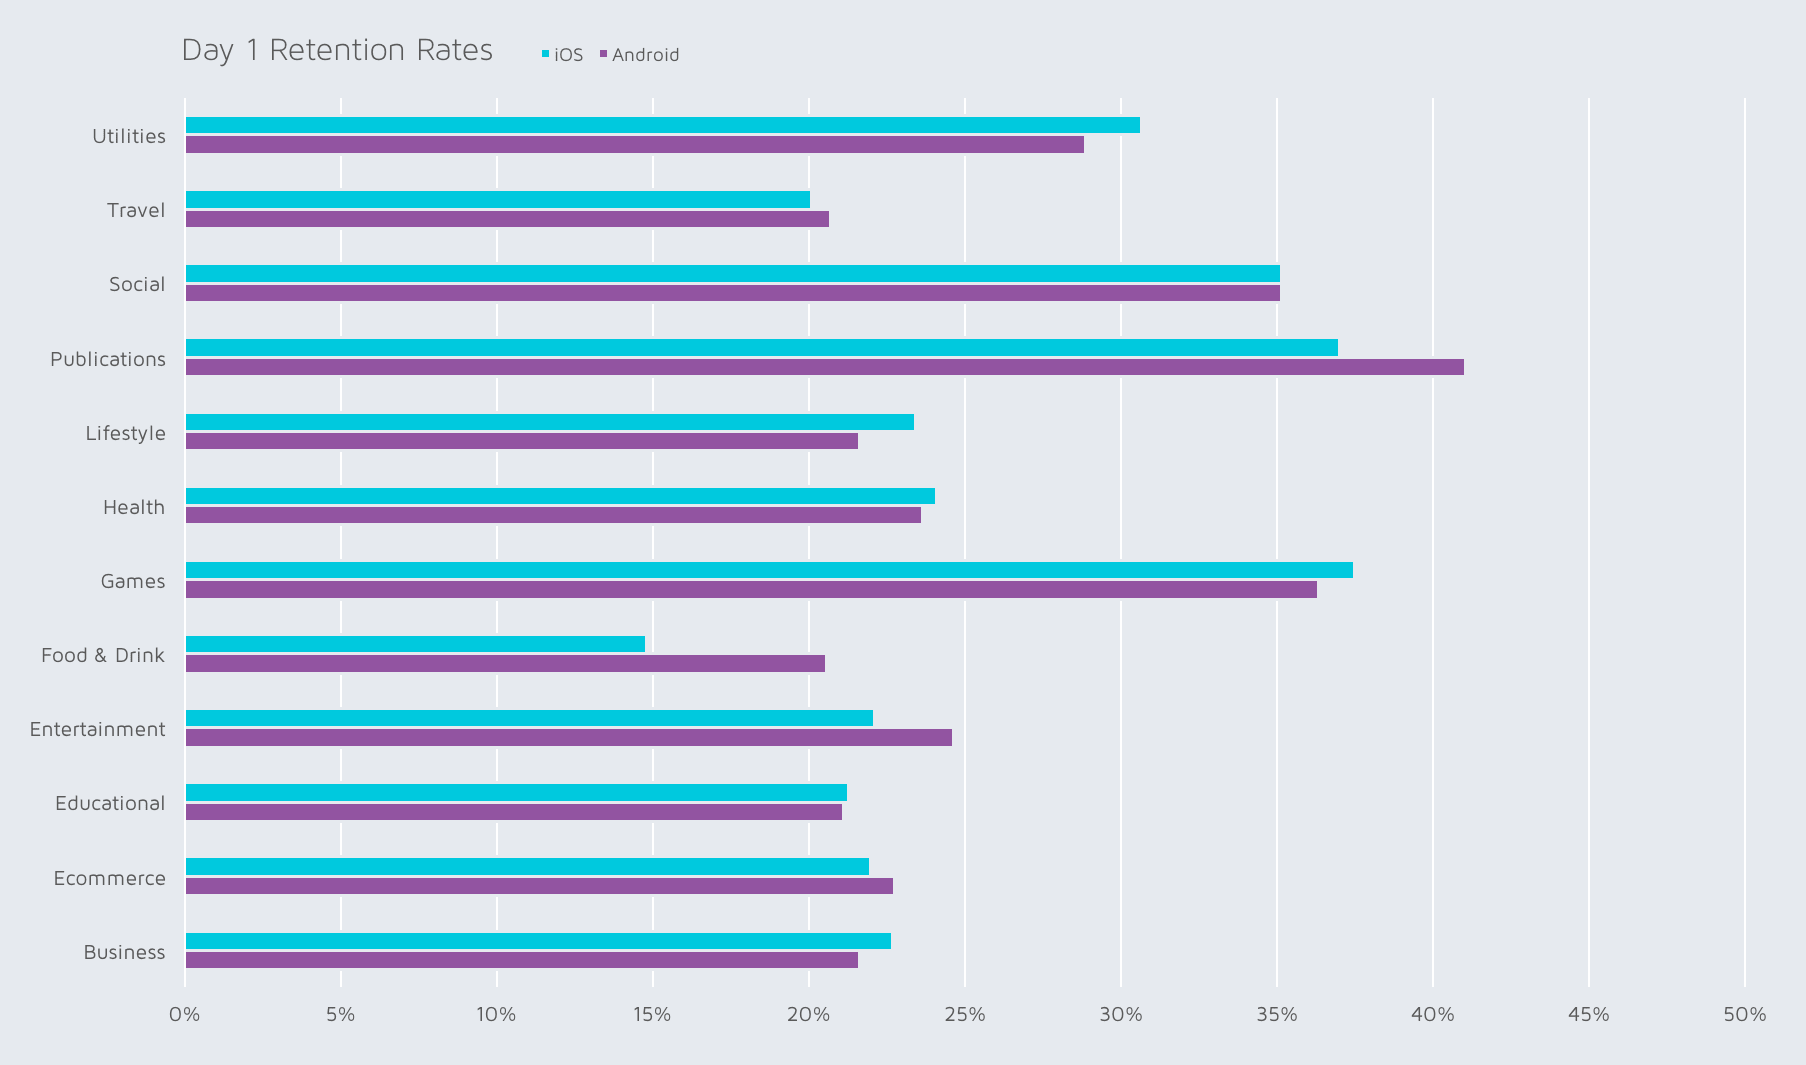 Q3 2016 D1 retention benchmarks by app category from Adjust